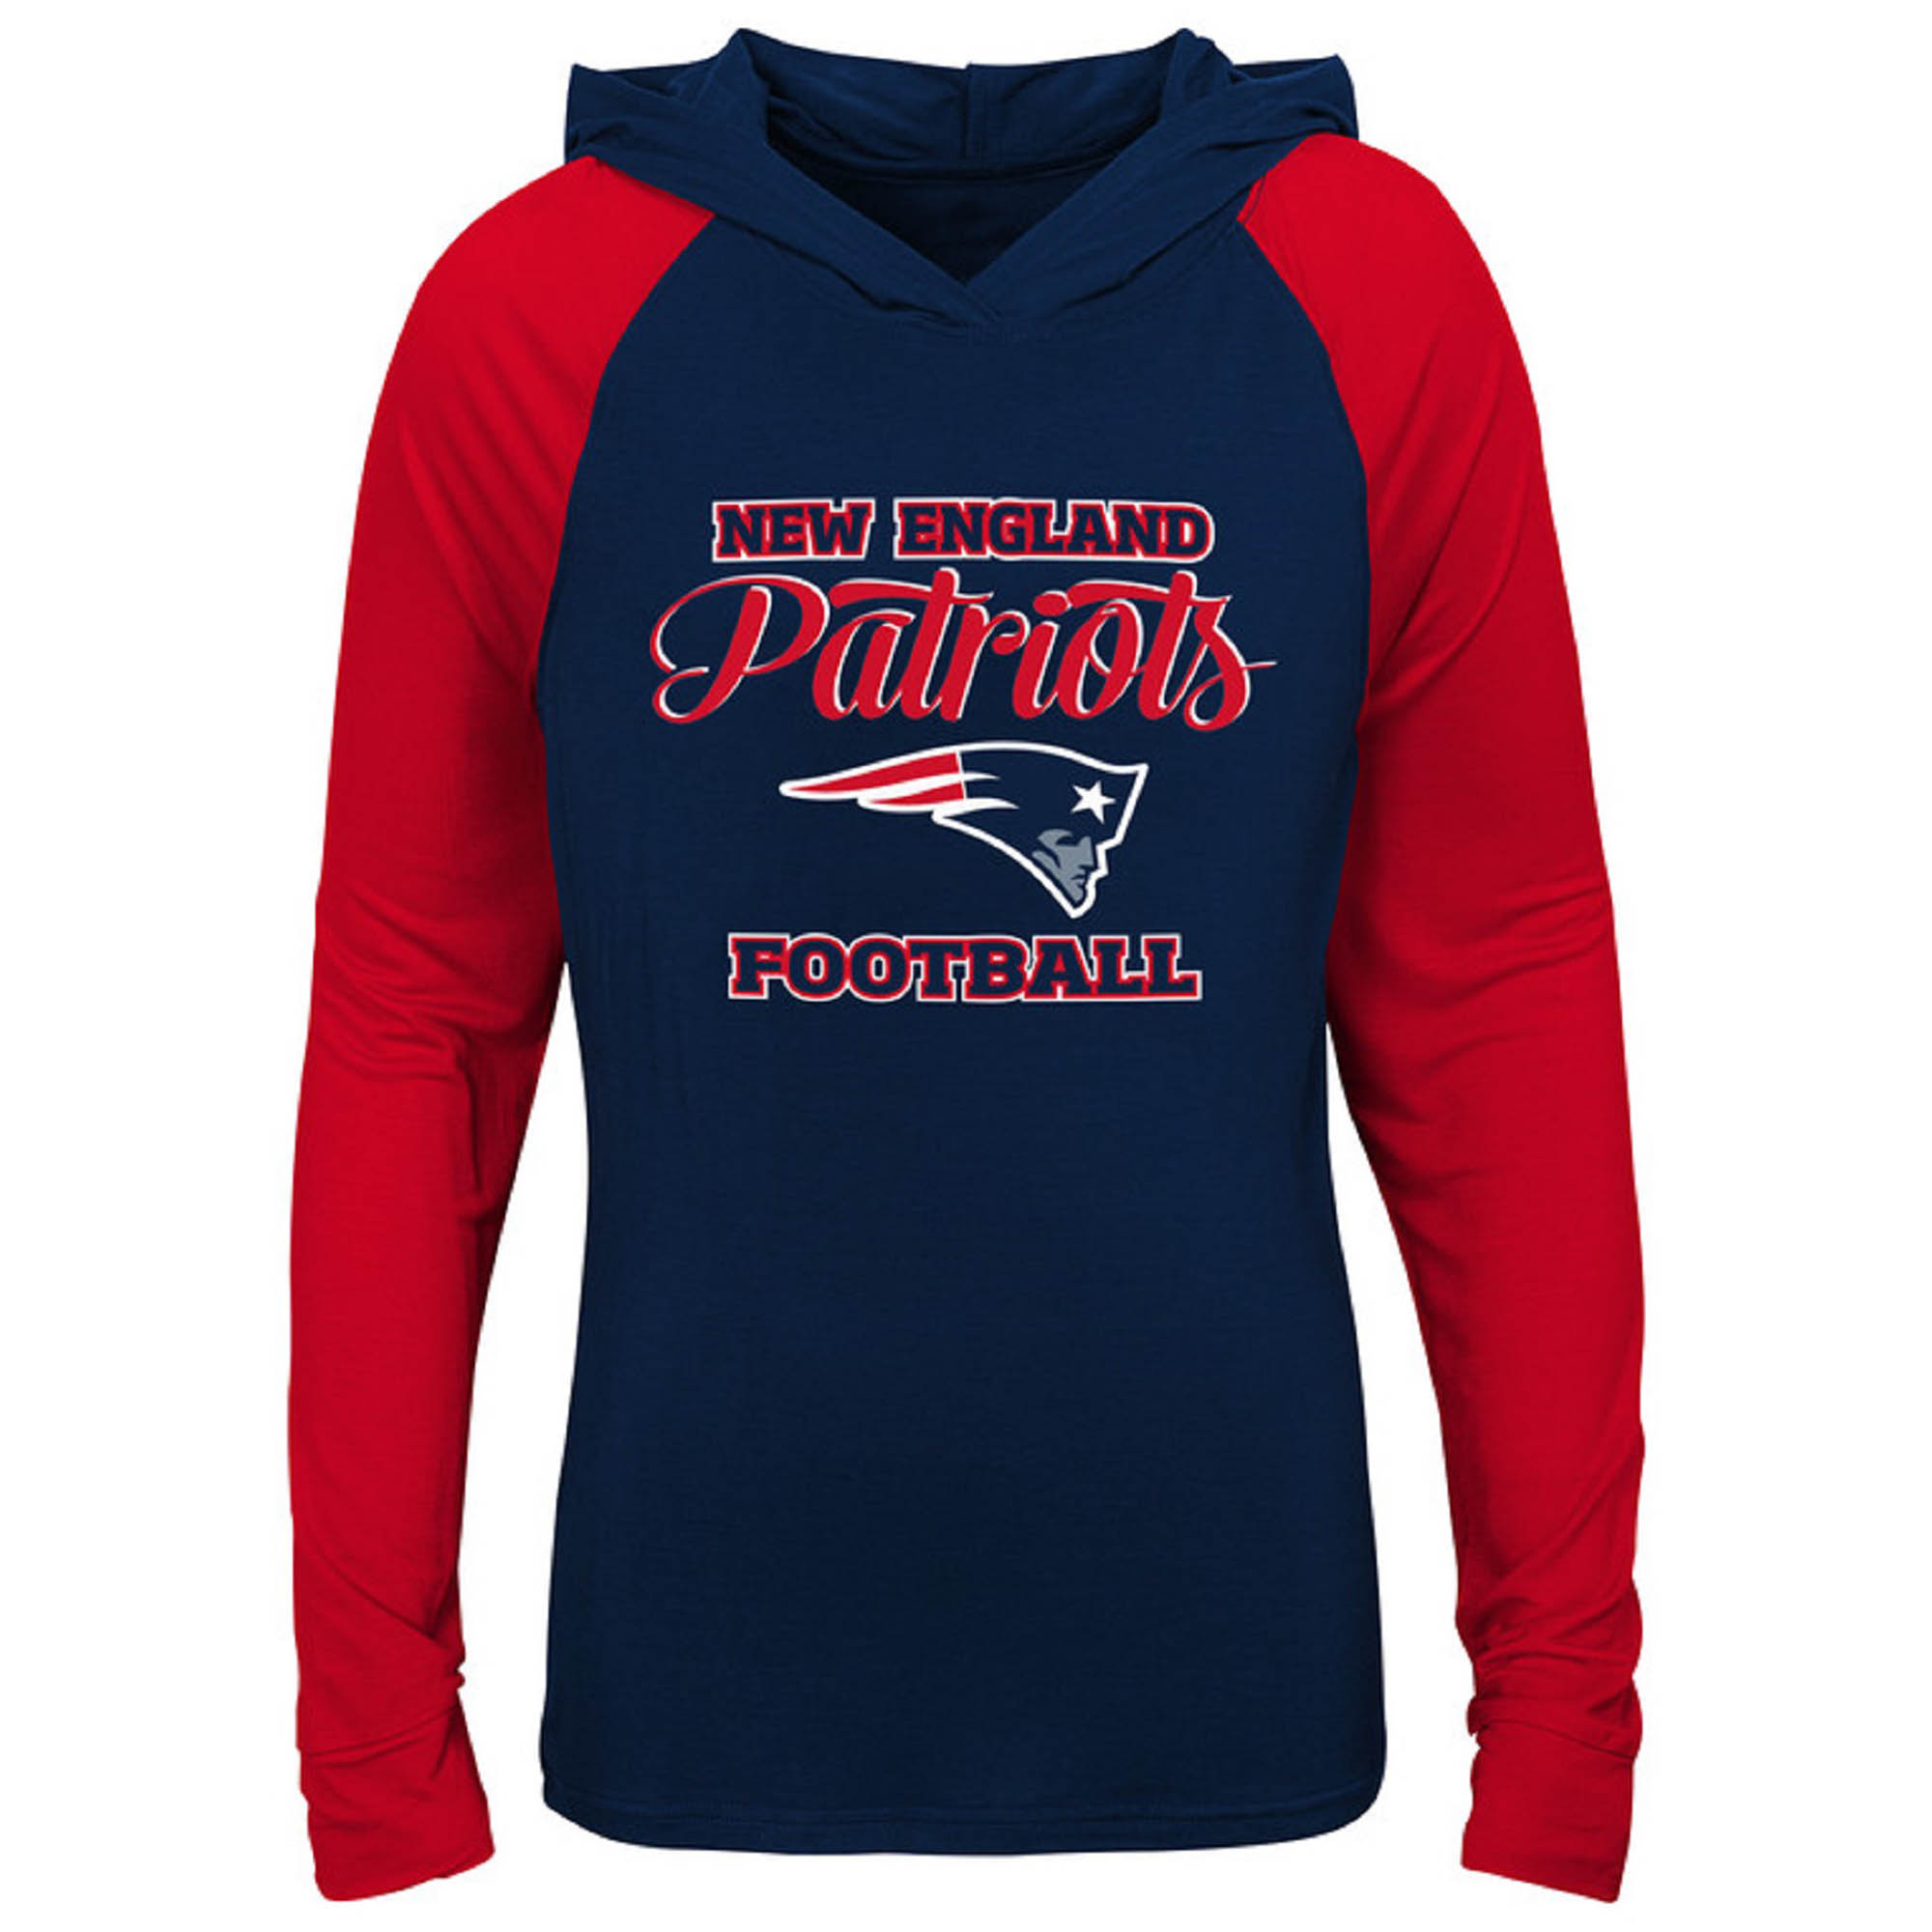 separation shoes 9205f d1b6b Girls Youth Navy/Red New England Patriots Hooded Long Sleeve T-Shirt